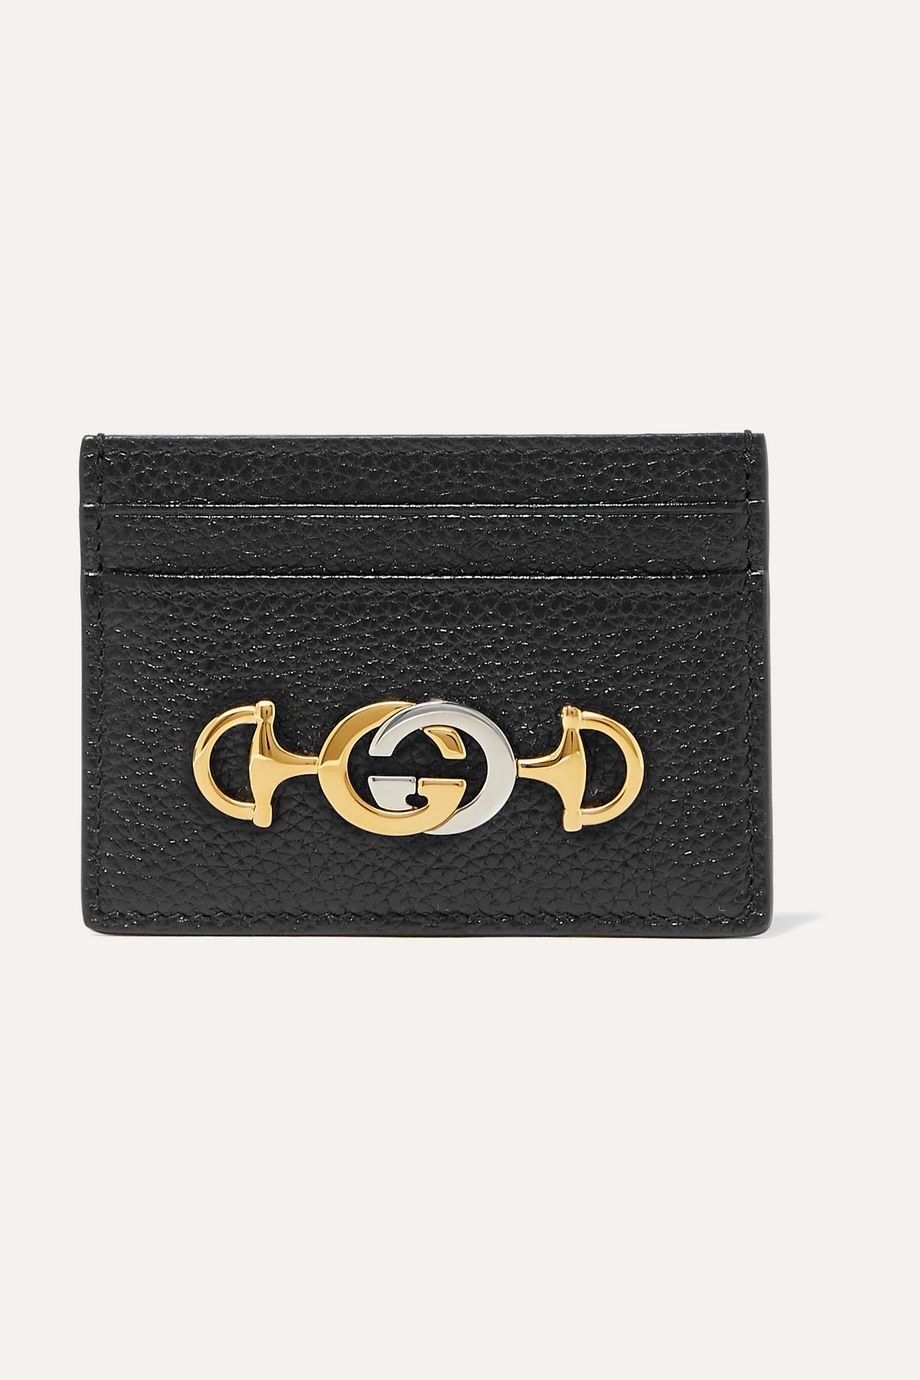 Gucci Zumi embellished textured-leather cardholder